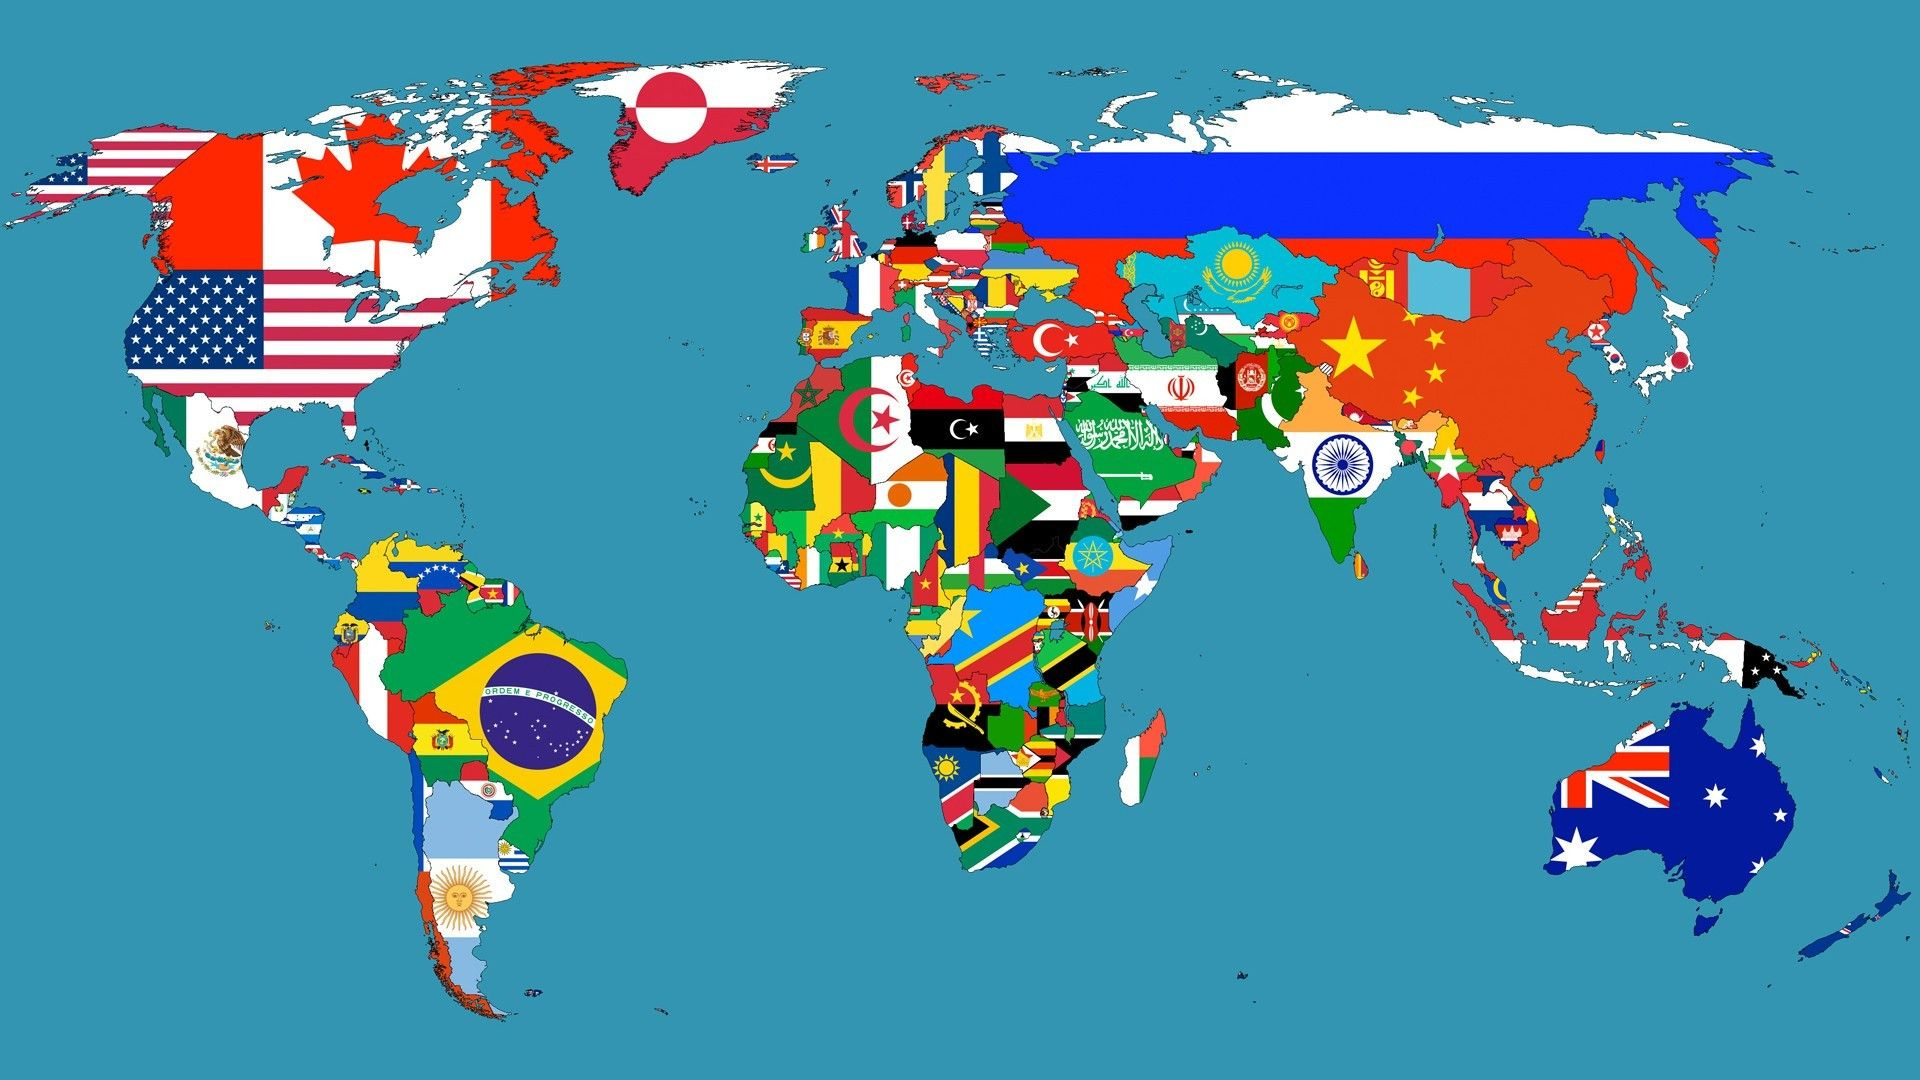 World Map Wallpaper Names Refrence Flags Maps Countries World Map